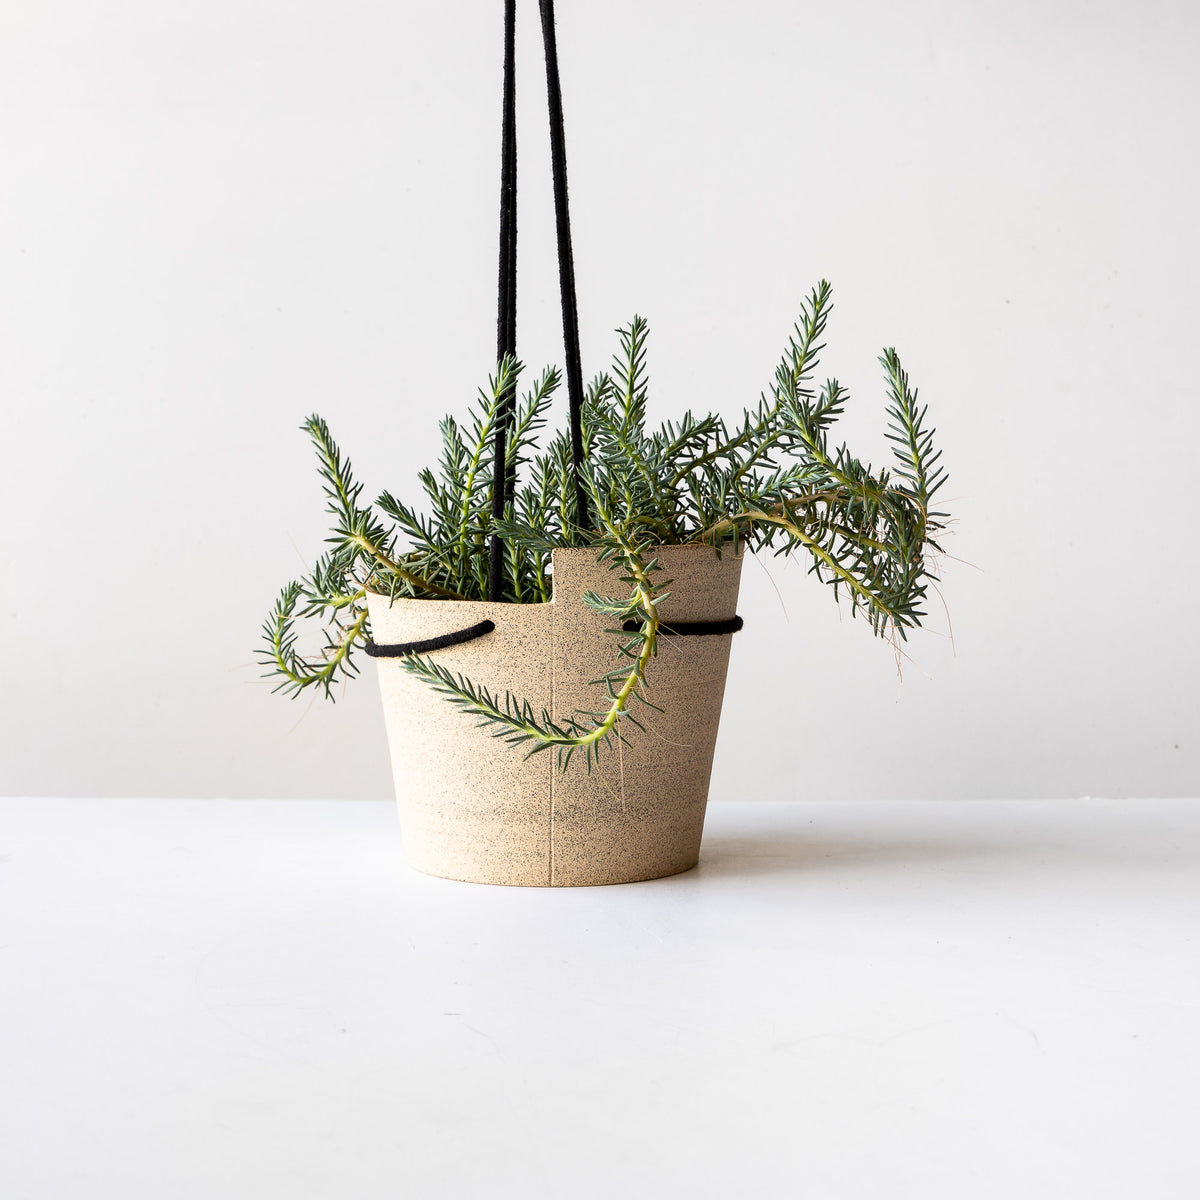 Large Beige Speckled Stoneware Hanging Planter With Plant- Sold by Chic & Basta